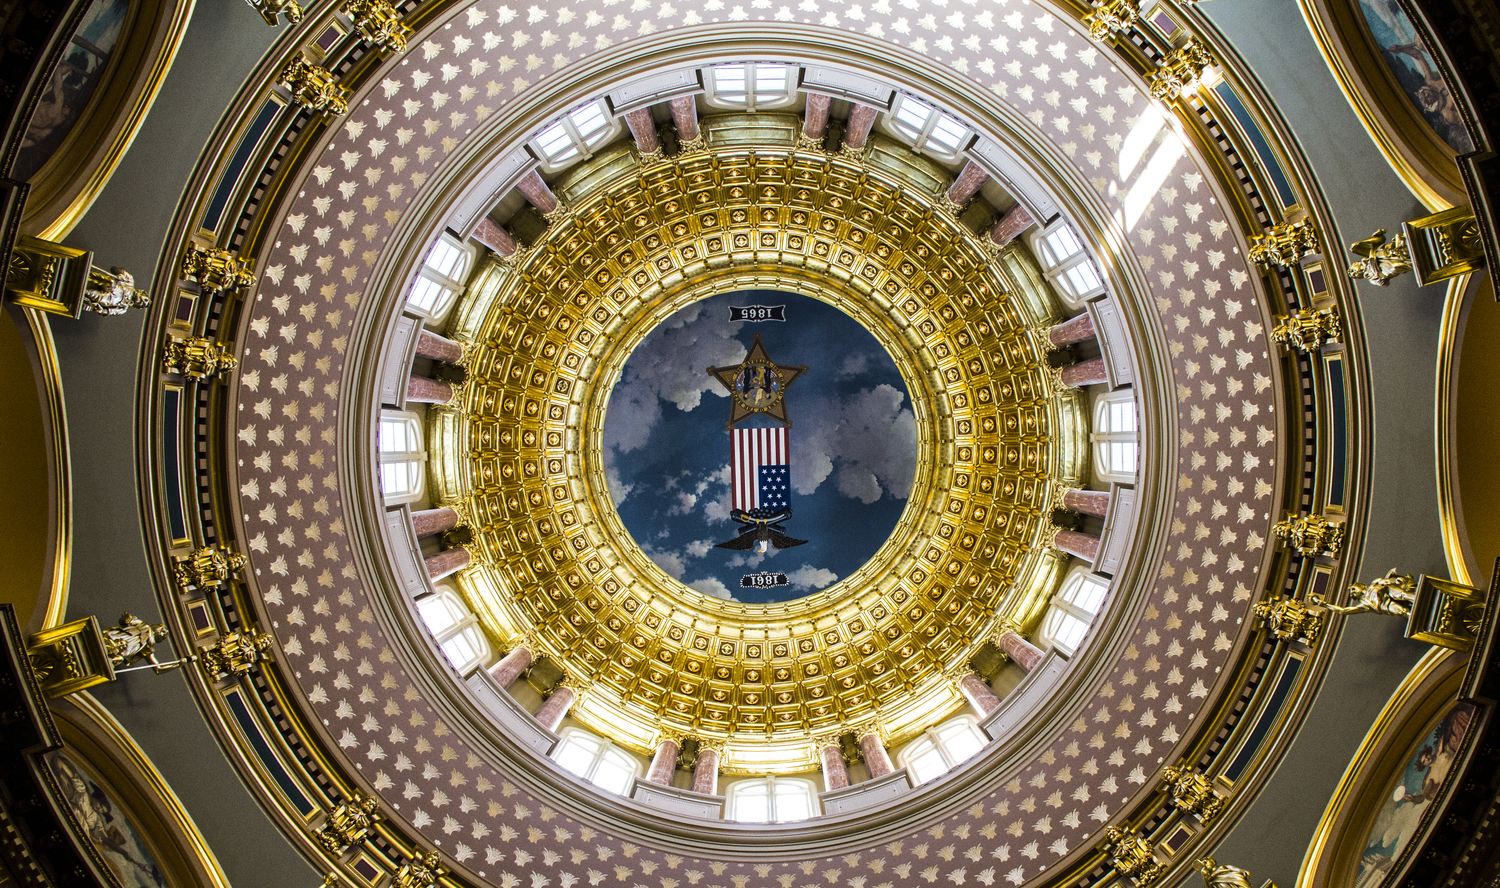 Iowa State Capitol, looking up into the dome